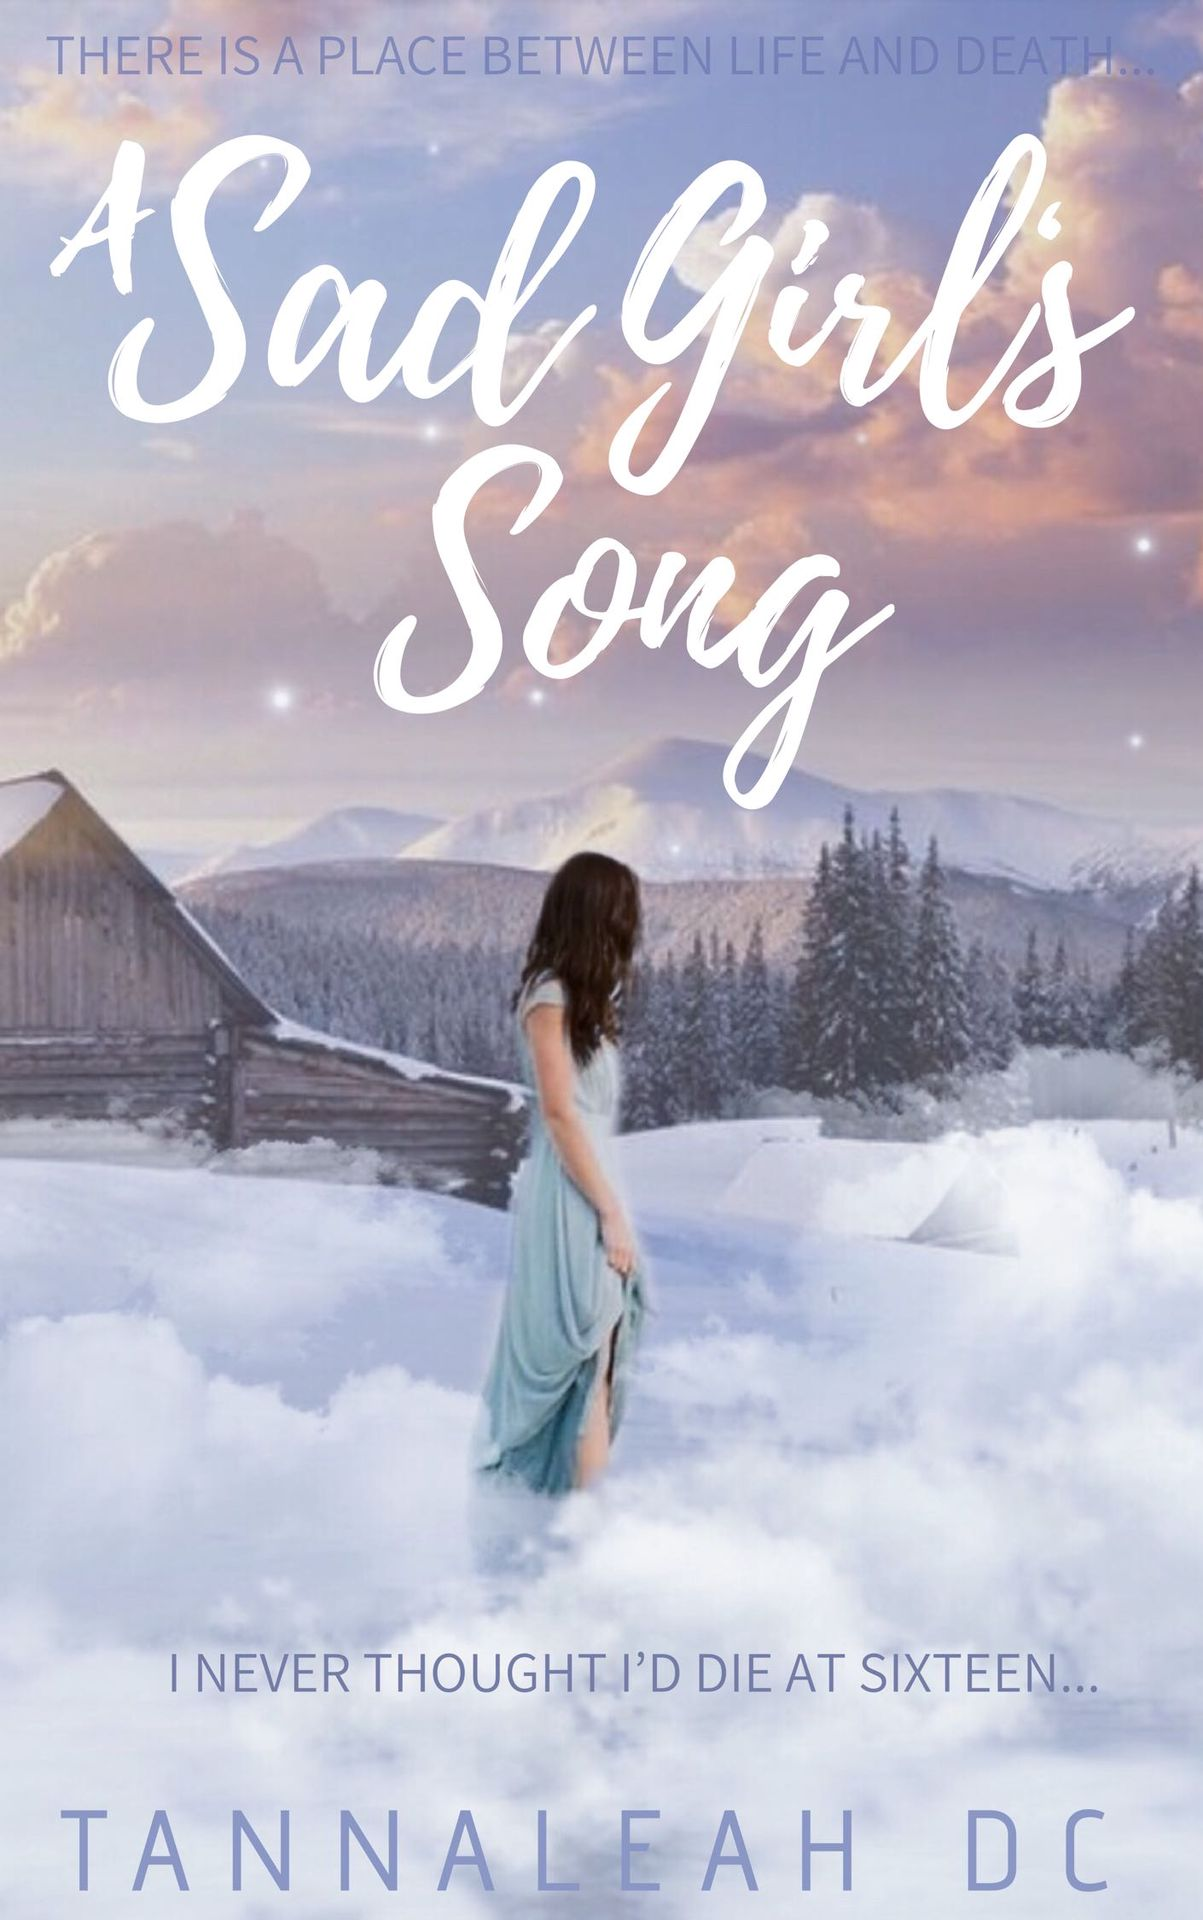 A Sad Girl's Song - INFO - Wattpad